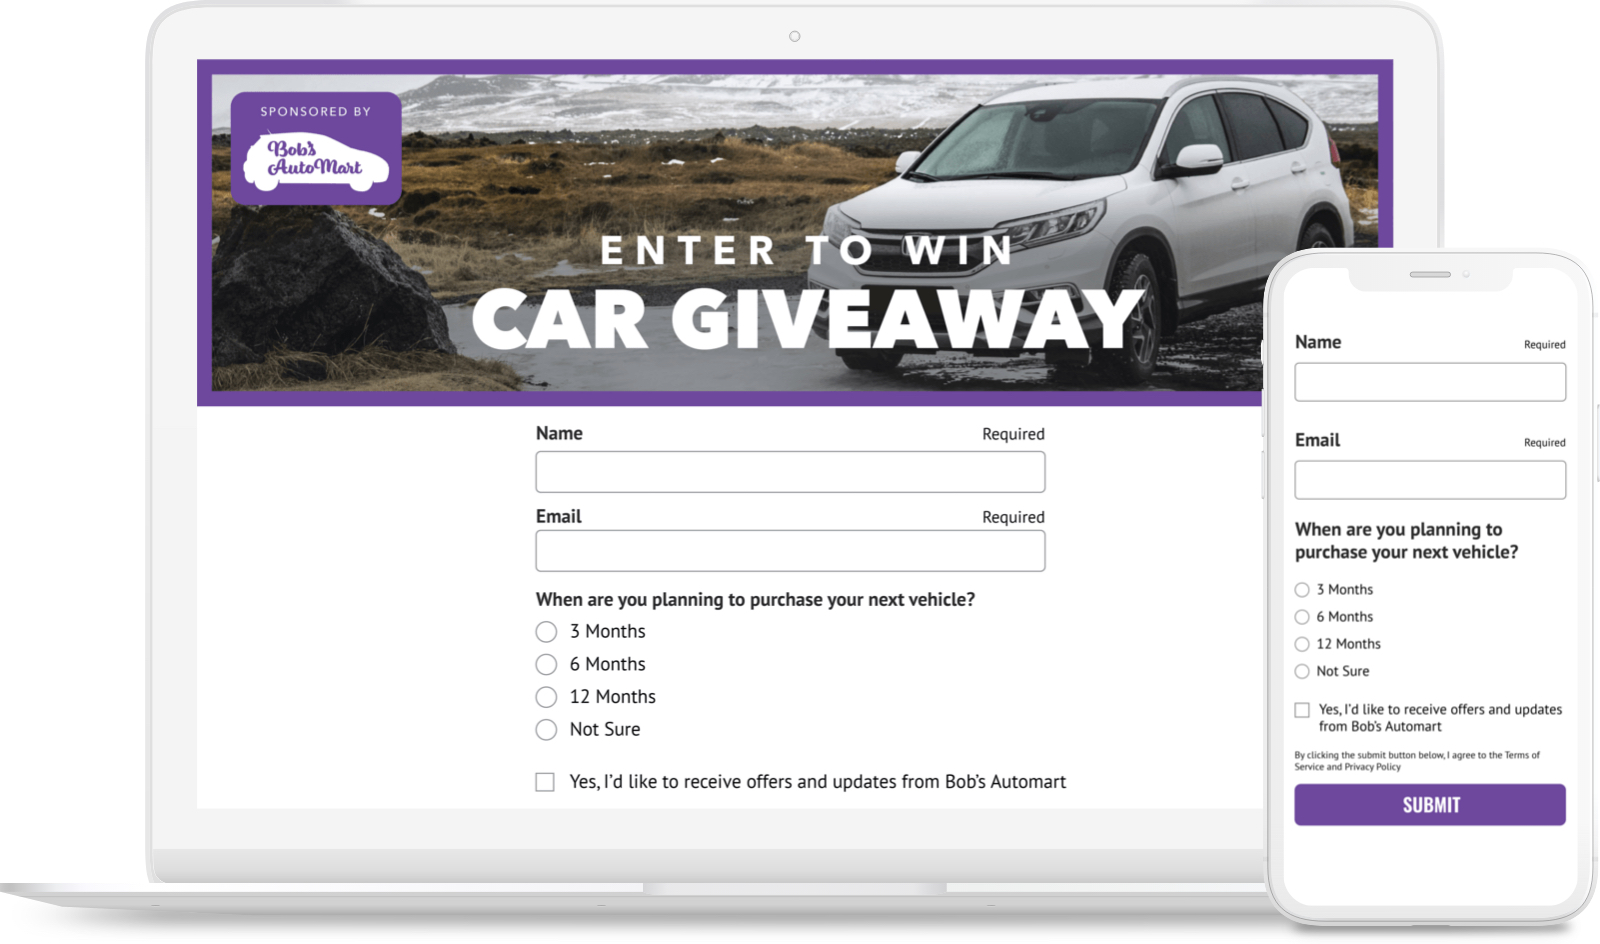 Car Giveaway sweepstakes with lead-gen survey questions and an email opt-in.